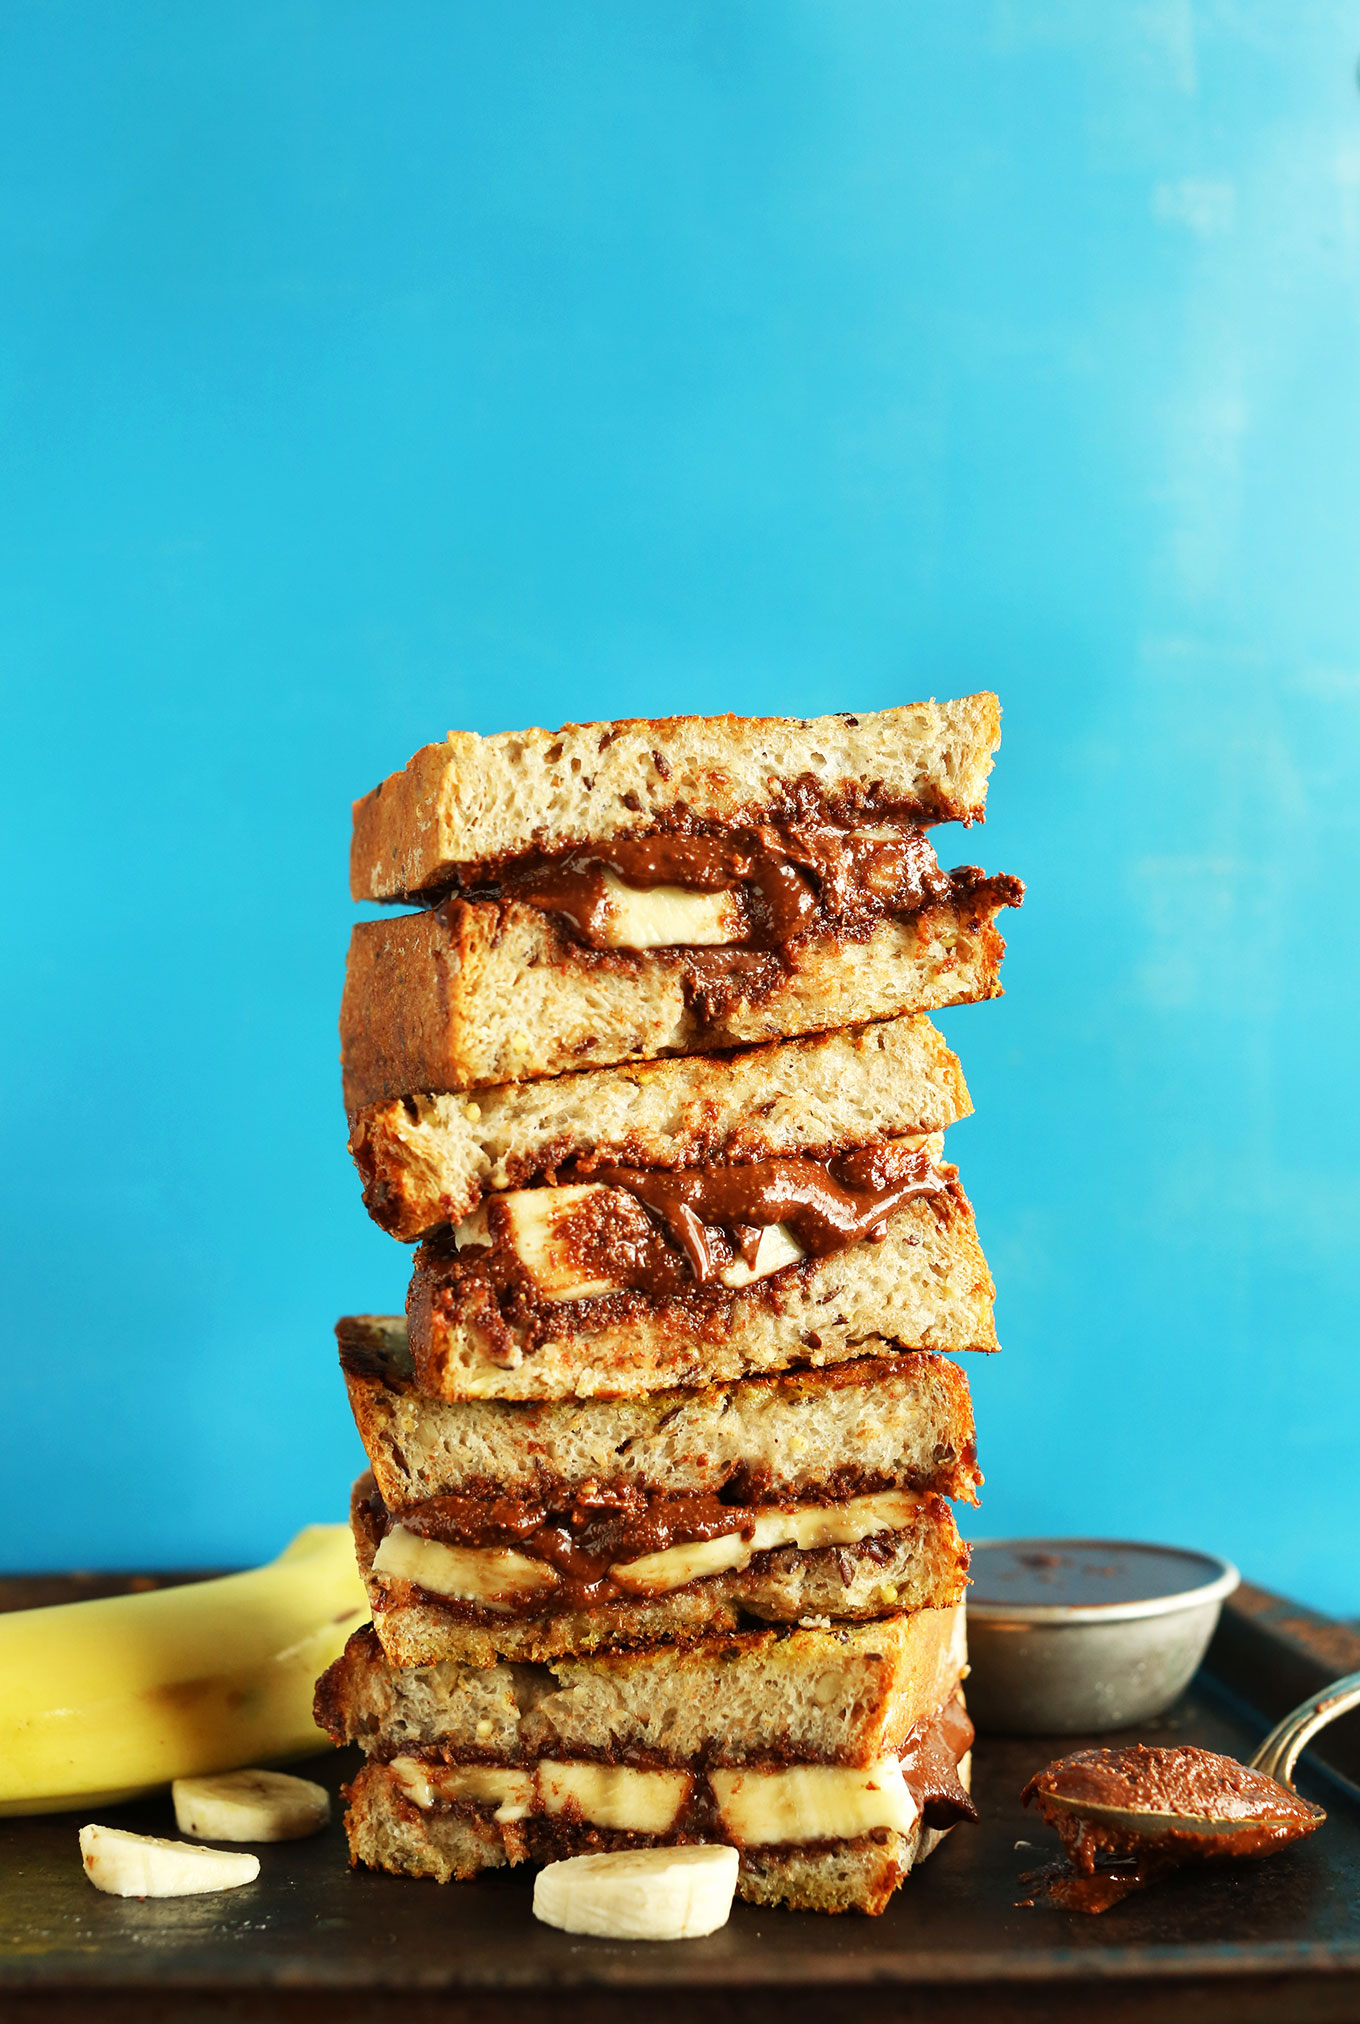 Stack of crispy vegan Grilled Banana Nutella Sandwiches